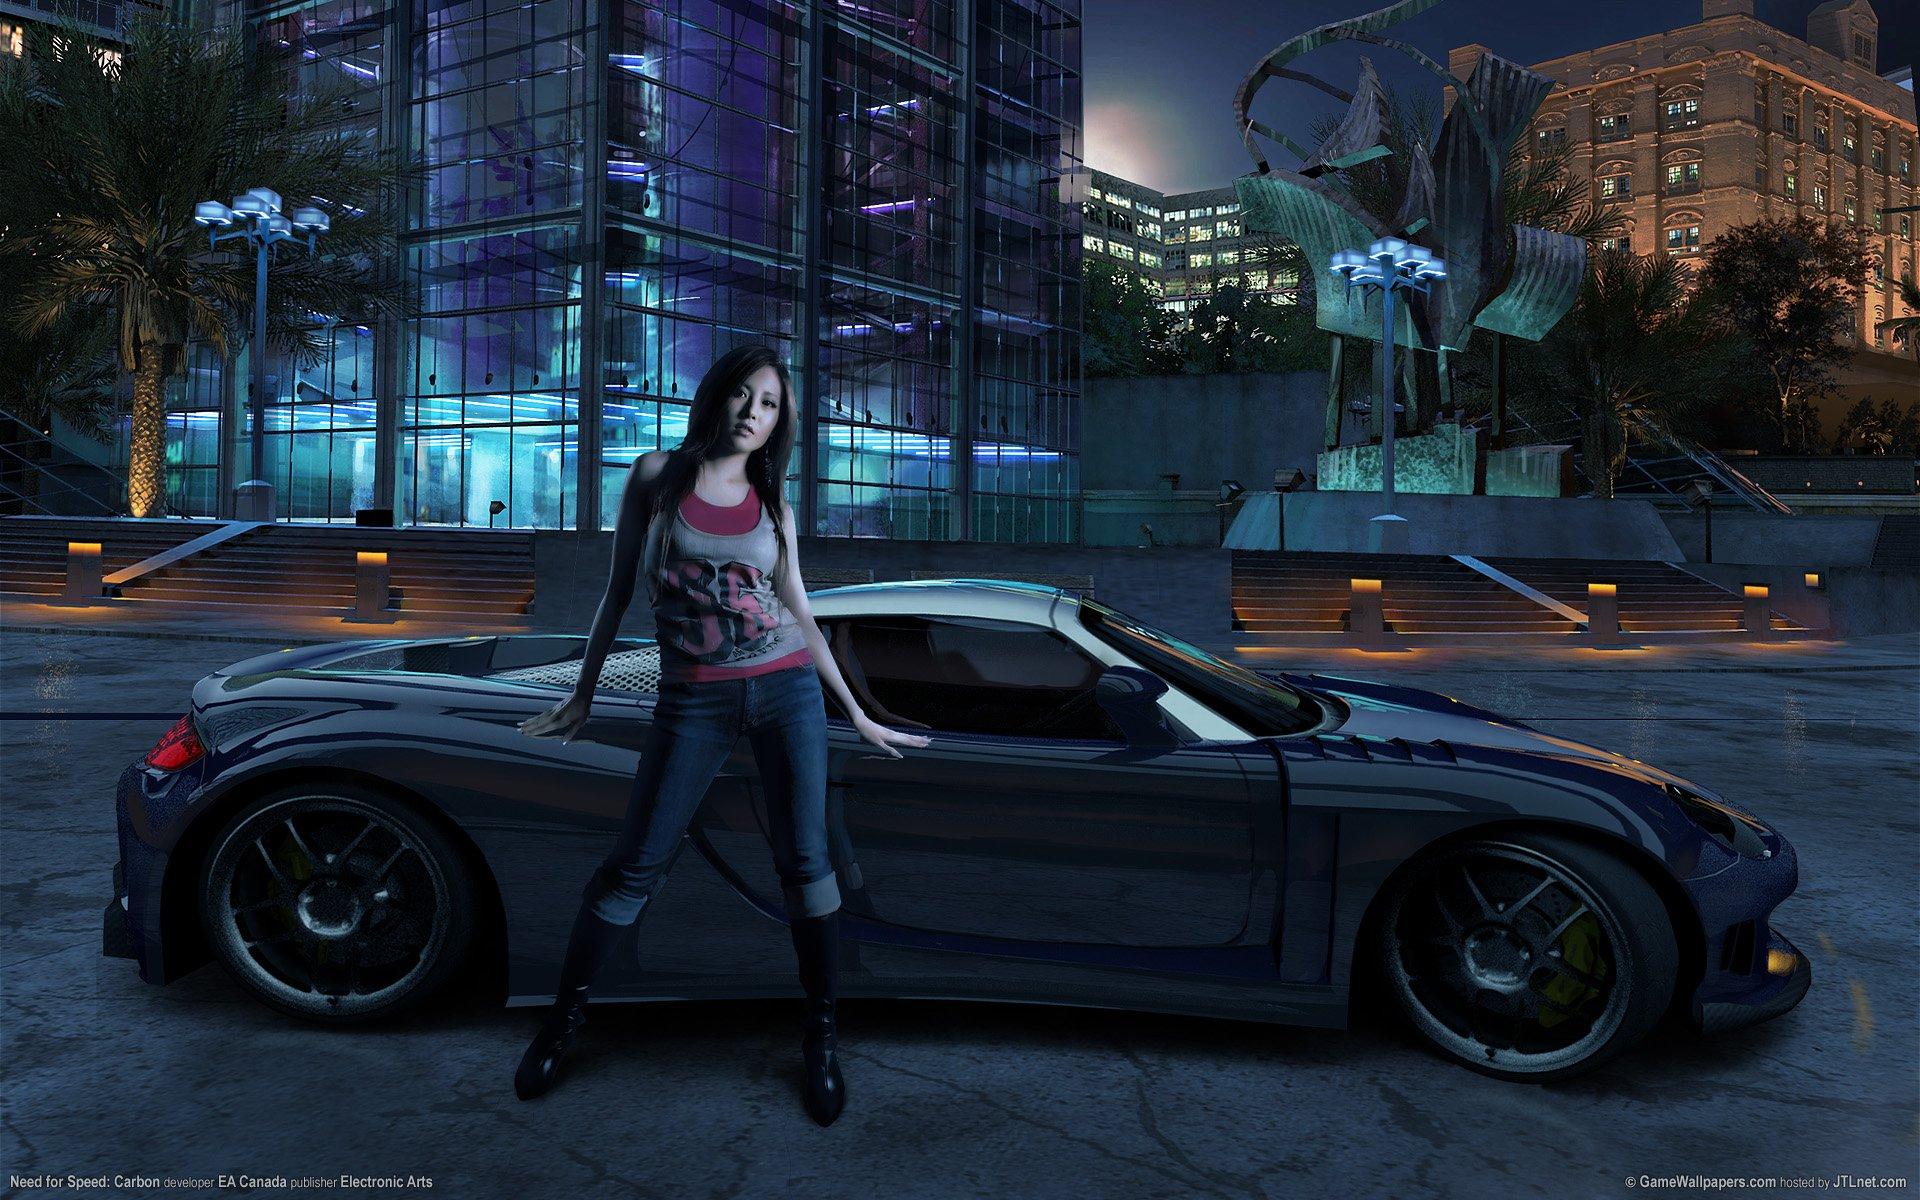 Need for Speed Carbon Girl Wallpaper HD Car Wallpapers 1920x1200